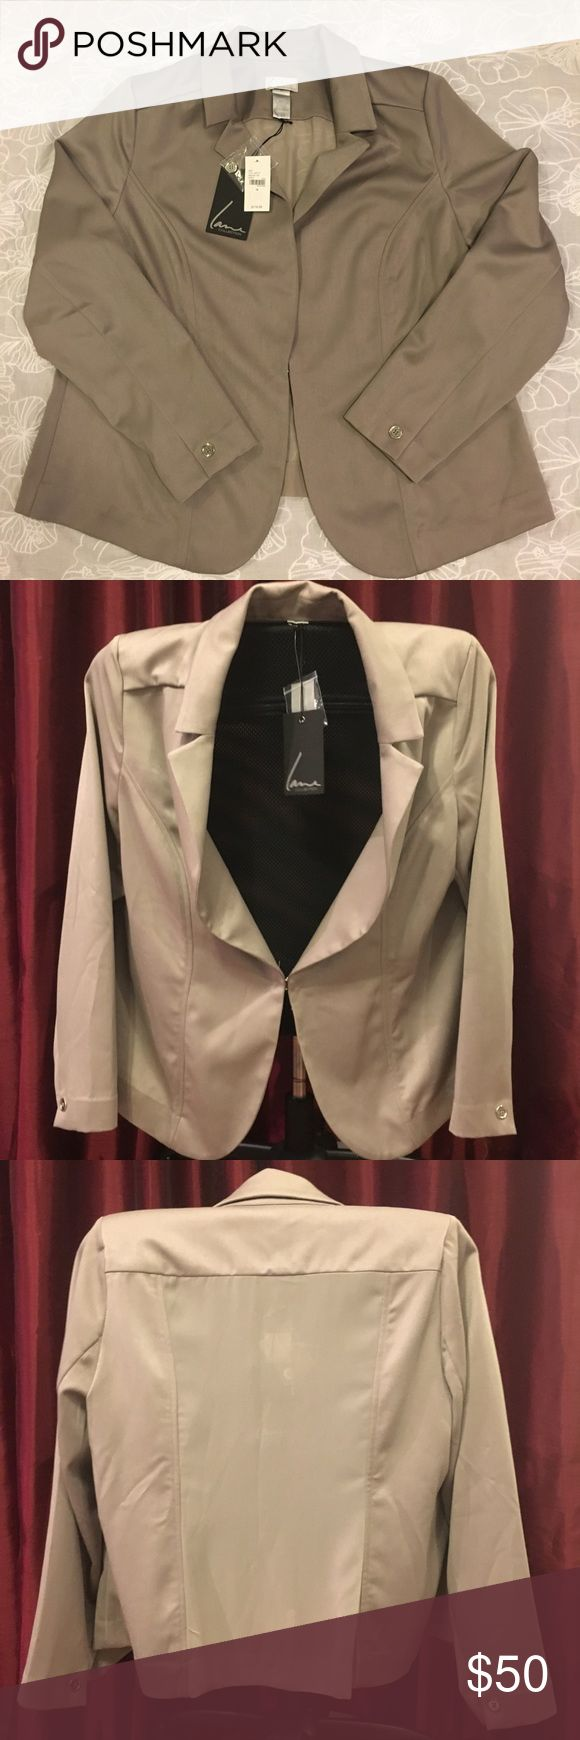 """NEW with tags! Lane Bryant beige blazer Sz 18 NWOT!  Lane Bryant Collection beige blazer size 18.  Beautiful blazer with sheer backing, shoulder pads, 1 clasp midsection to secure. Comes with extra replacement button. Sexy and sophisticated, this blazer can take you from work to an evening out on the same day.    Size 18 Material:  77% polyester, 21% rayon, 2% spandex   Approximate measurements laid flat- Width (Armpit to Armpit):  22"""" Length (shoulder to hem):  27""""  From a smoke-free home…"""